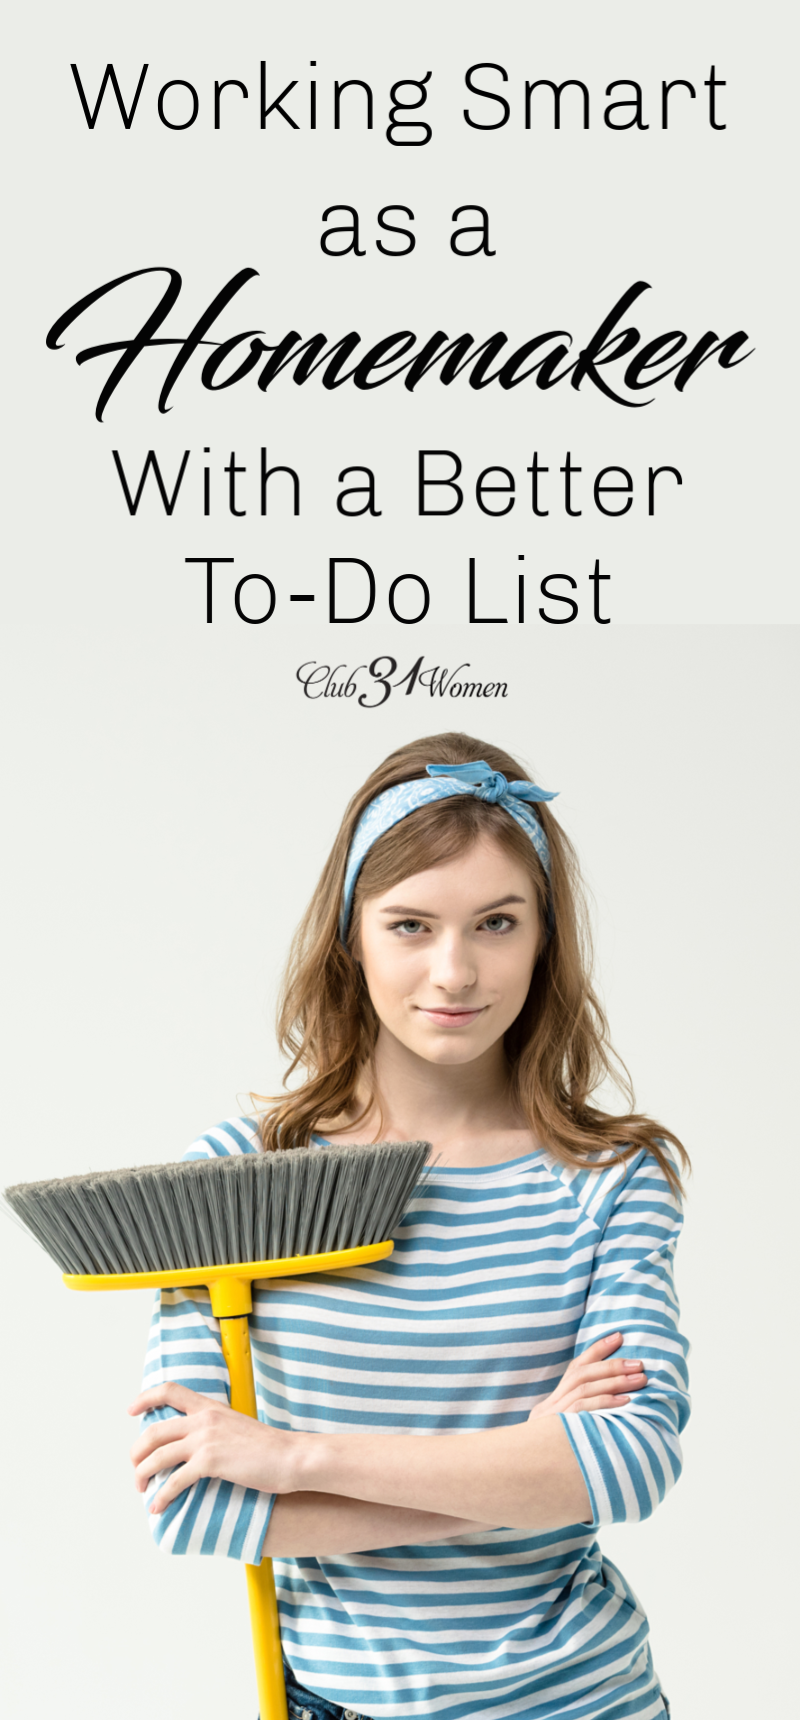 As a homemaker, do you feel overwhelmed with the neverending to-do list? What if I told you there was a way you could streamline your list and work smarter? via @Club31Women